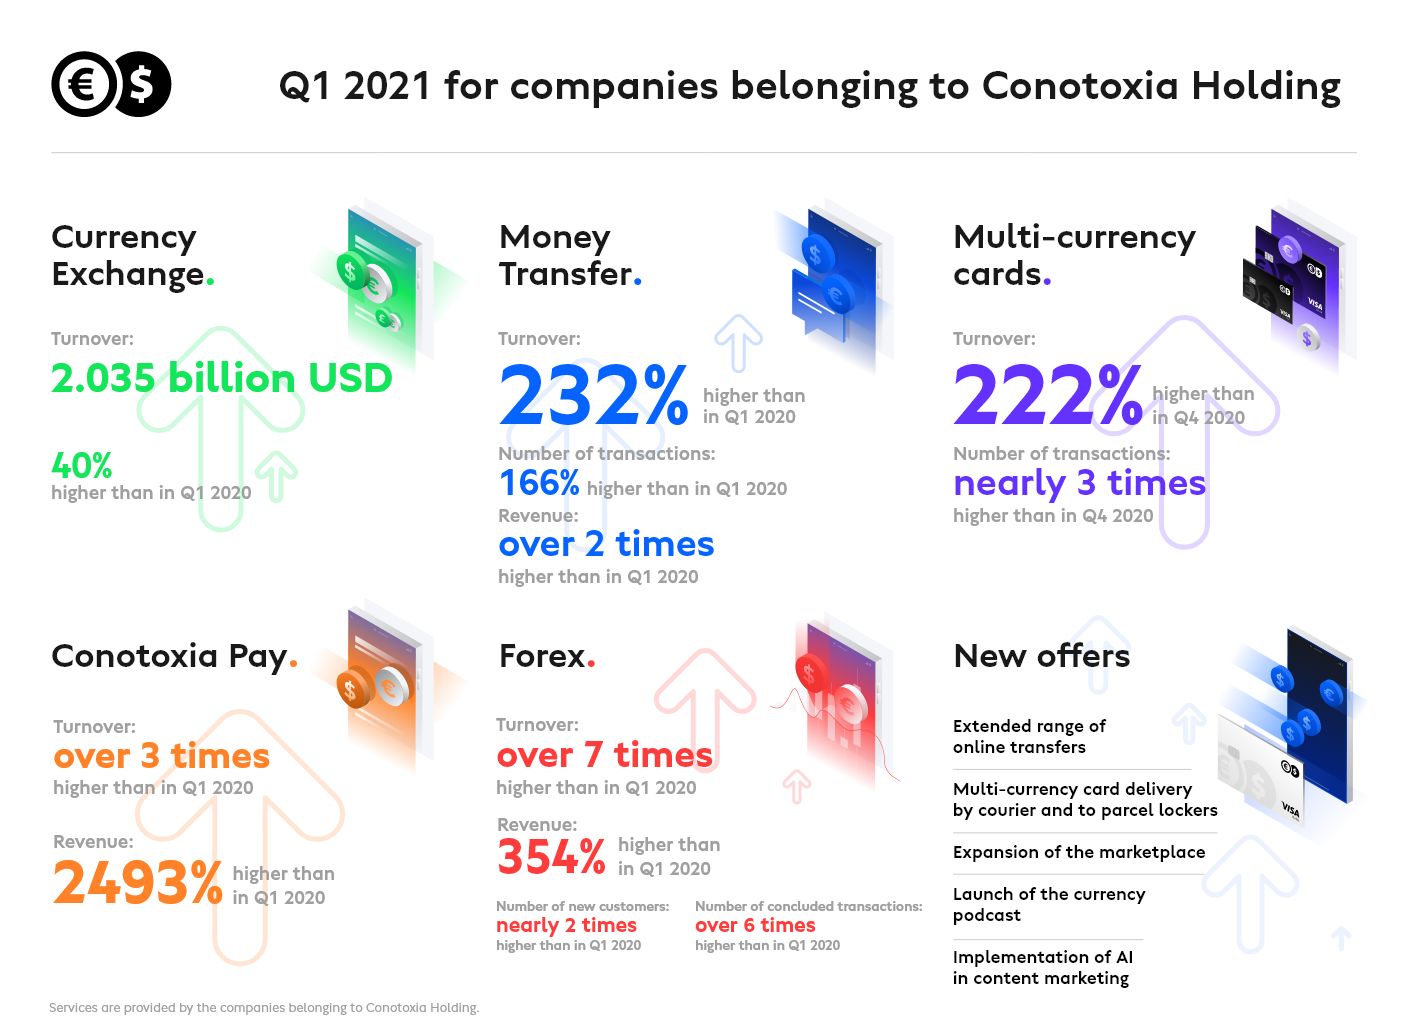 Conotoxia Holding companies continue to grow rapidly - record-breaking results in Q1 2021